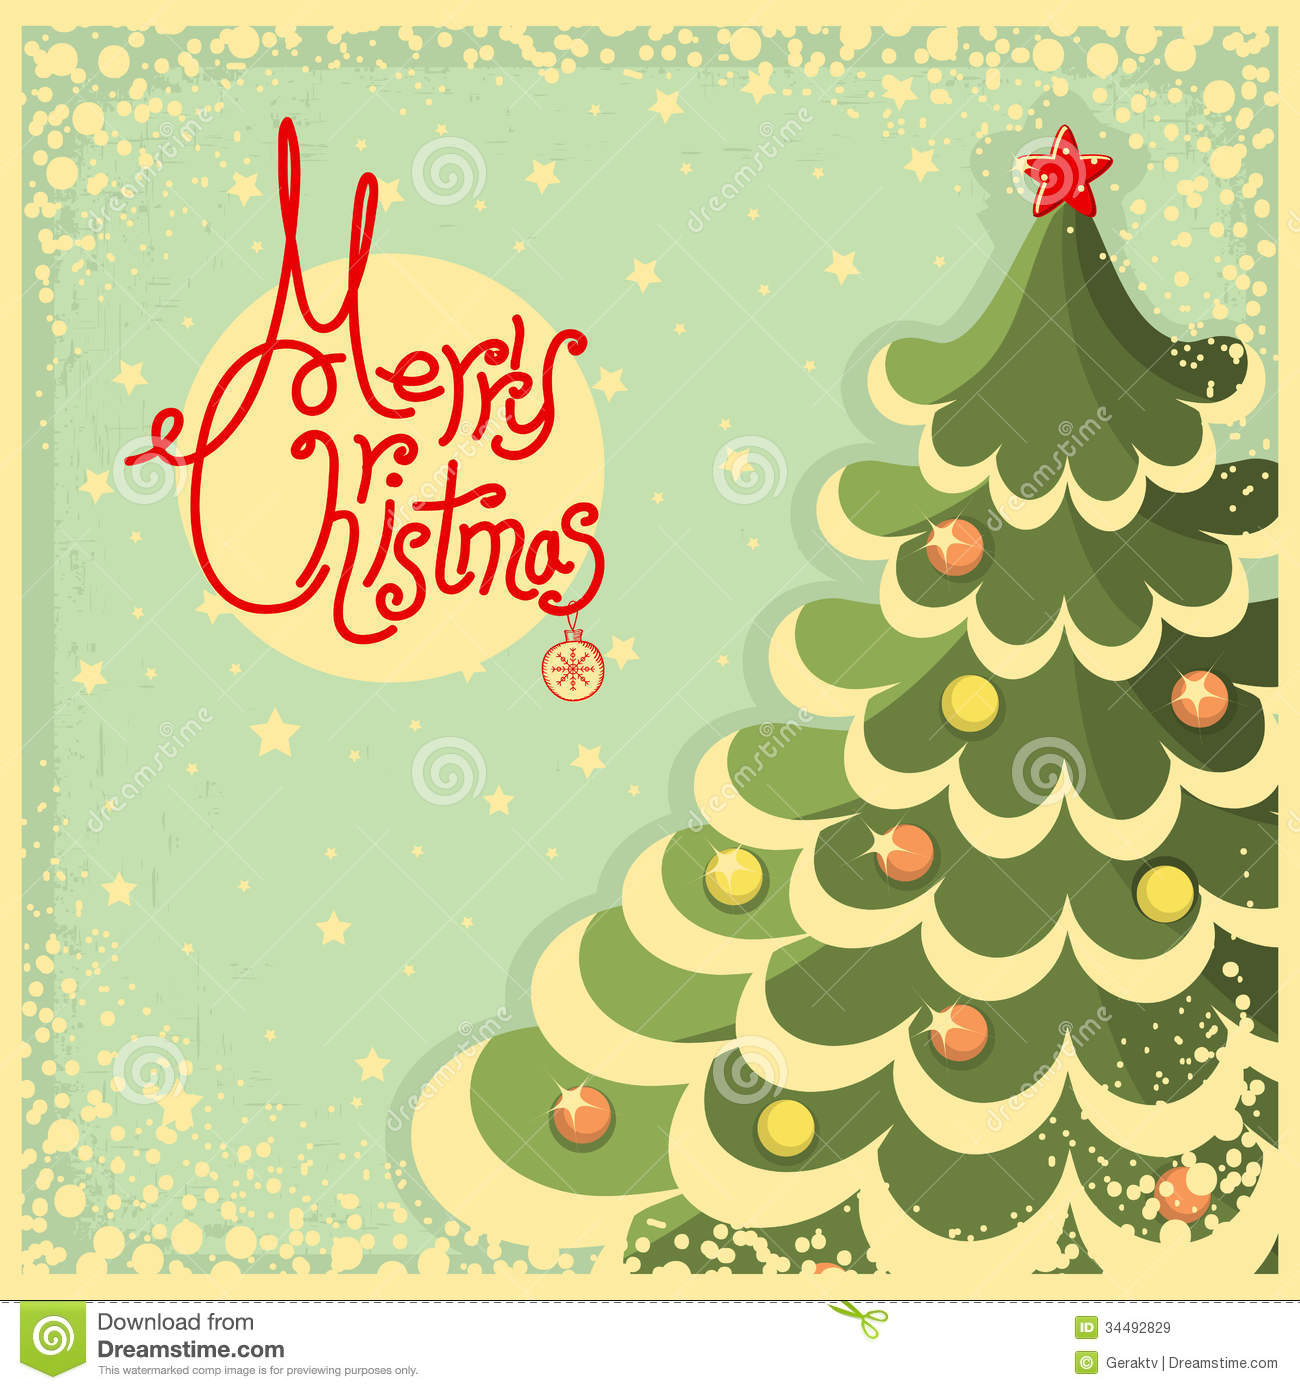 Vintage Christmas Card With Tree And Text Stock Vector ...